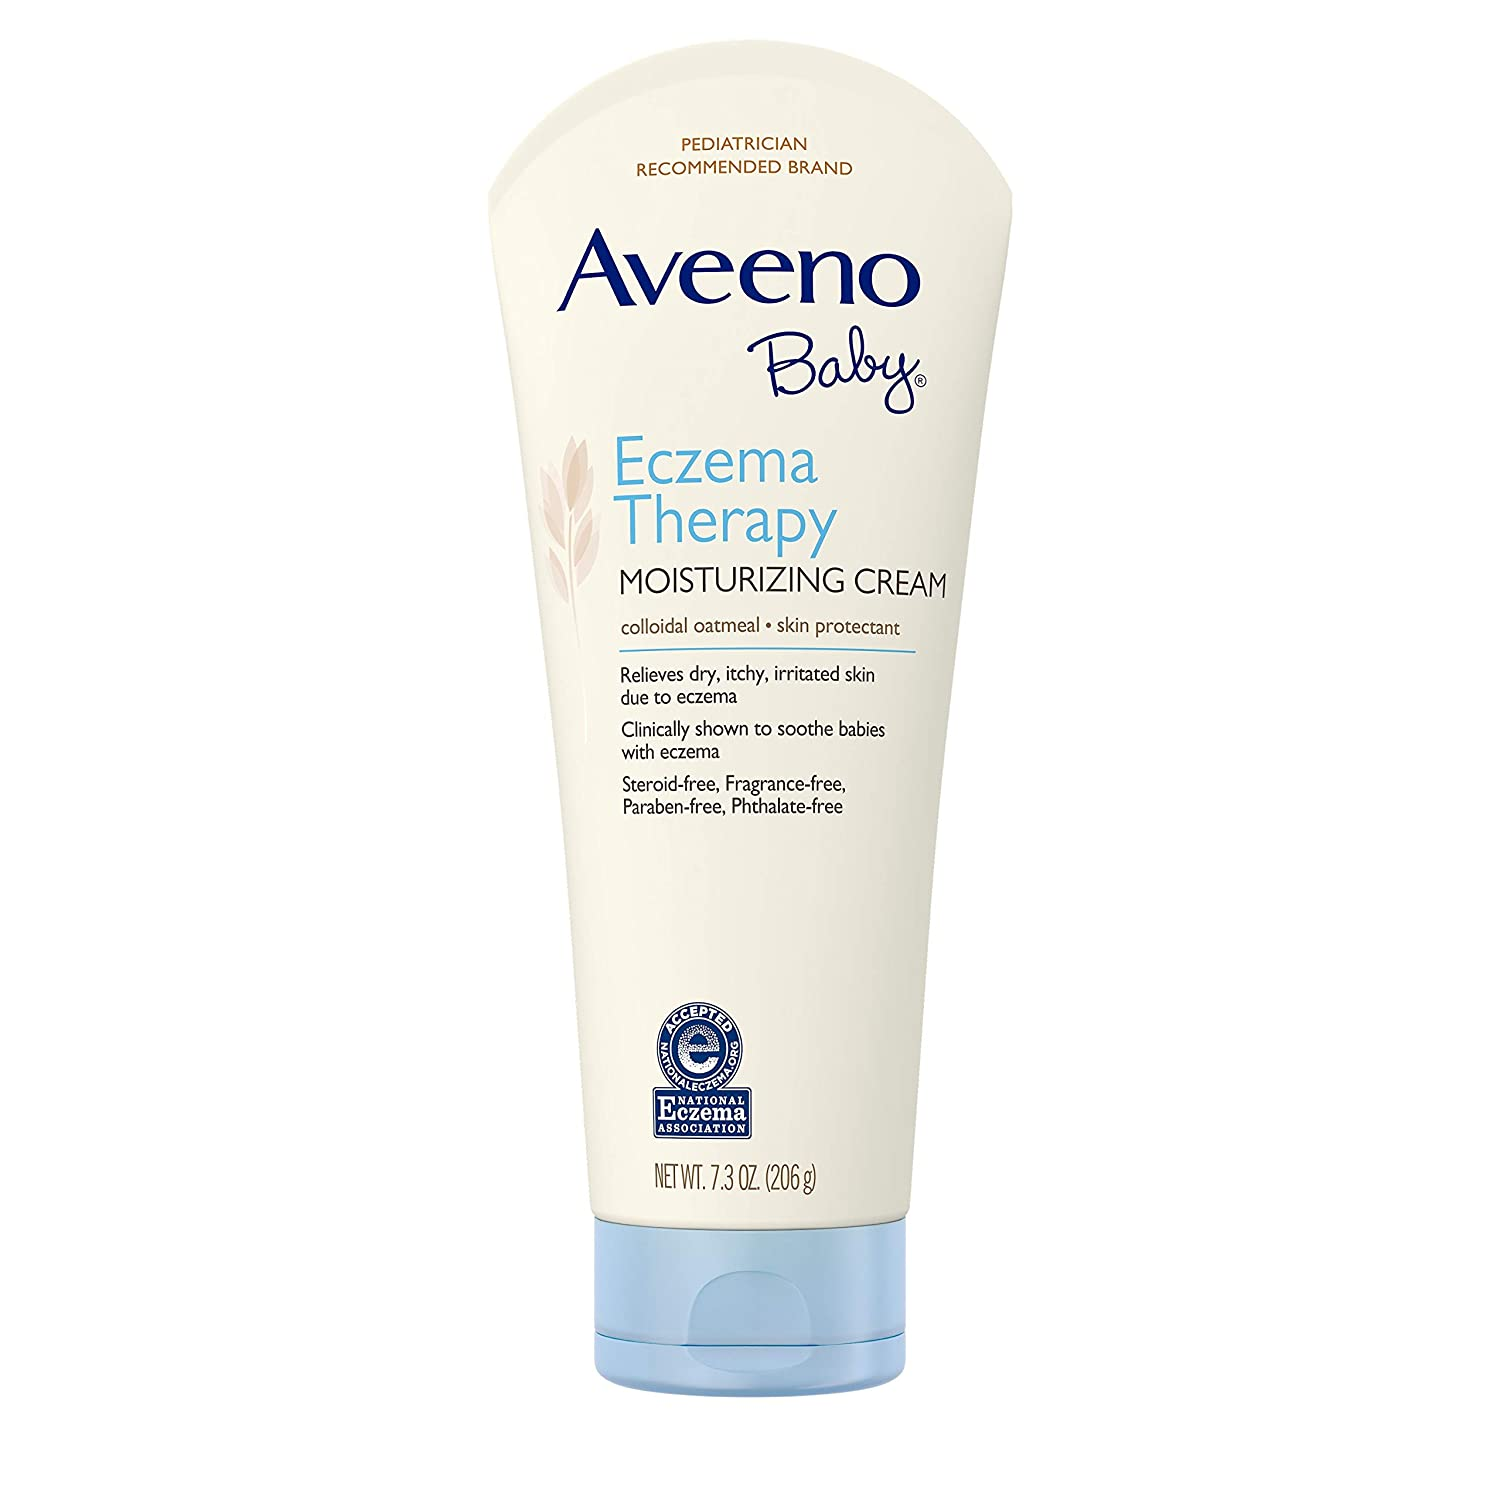 Diapering 3x Aveeno Baby Moisturizing Cream Daily Care With Oat Colloidal Moisturizes